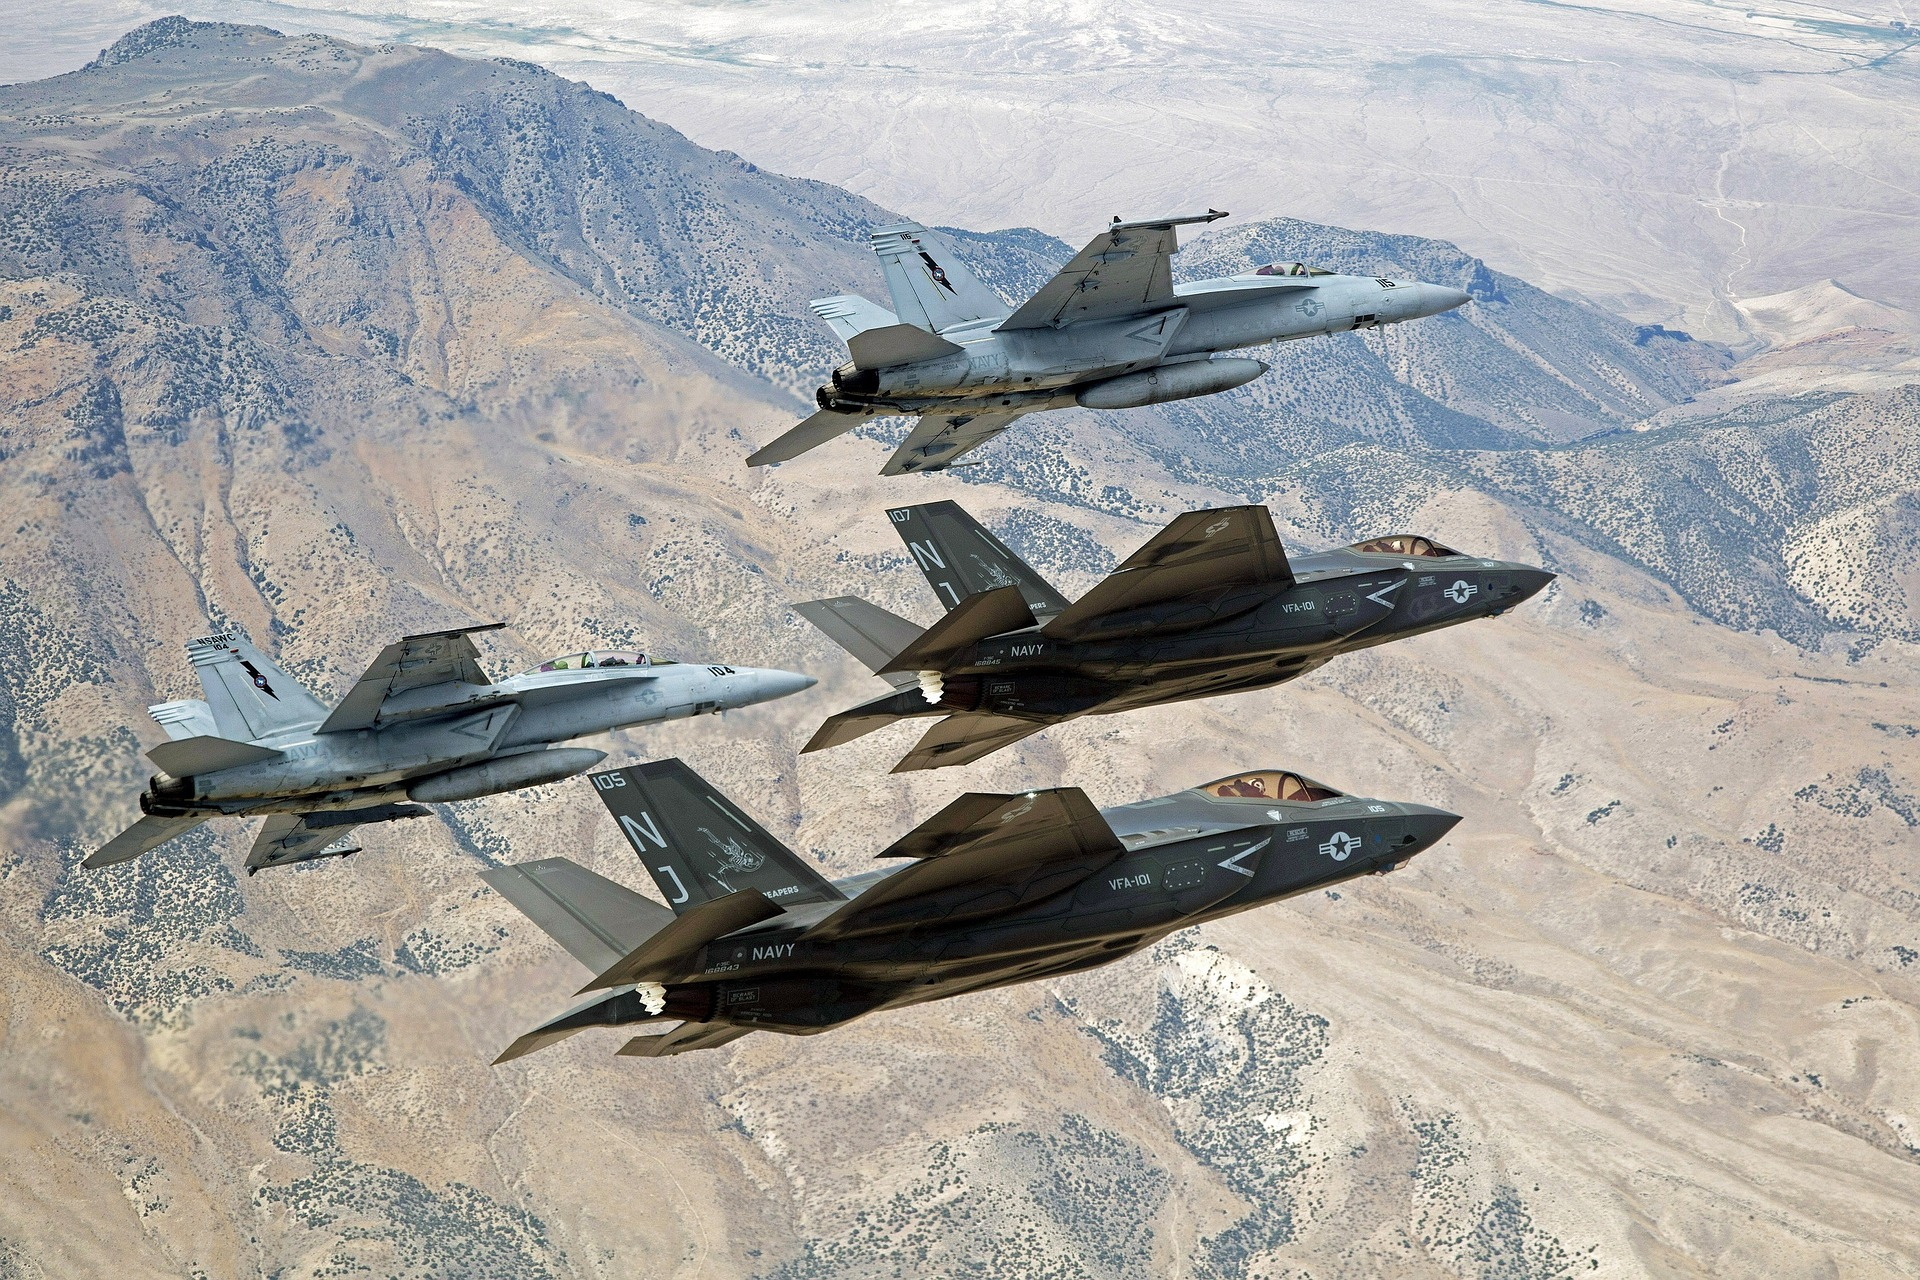 military-jets-1245270_1920